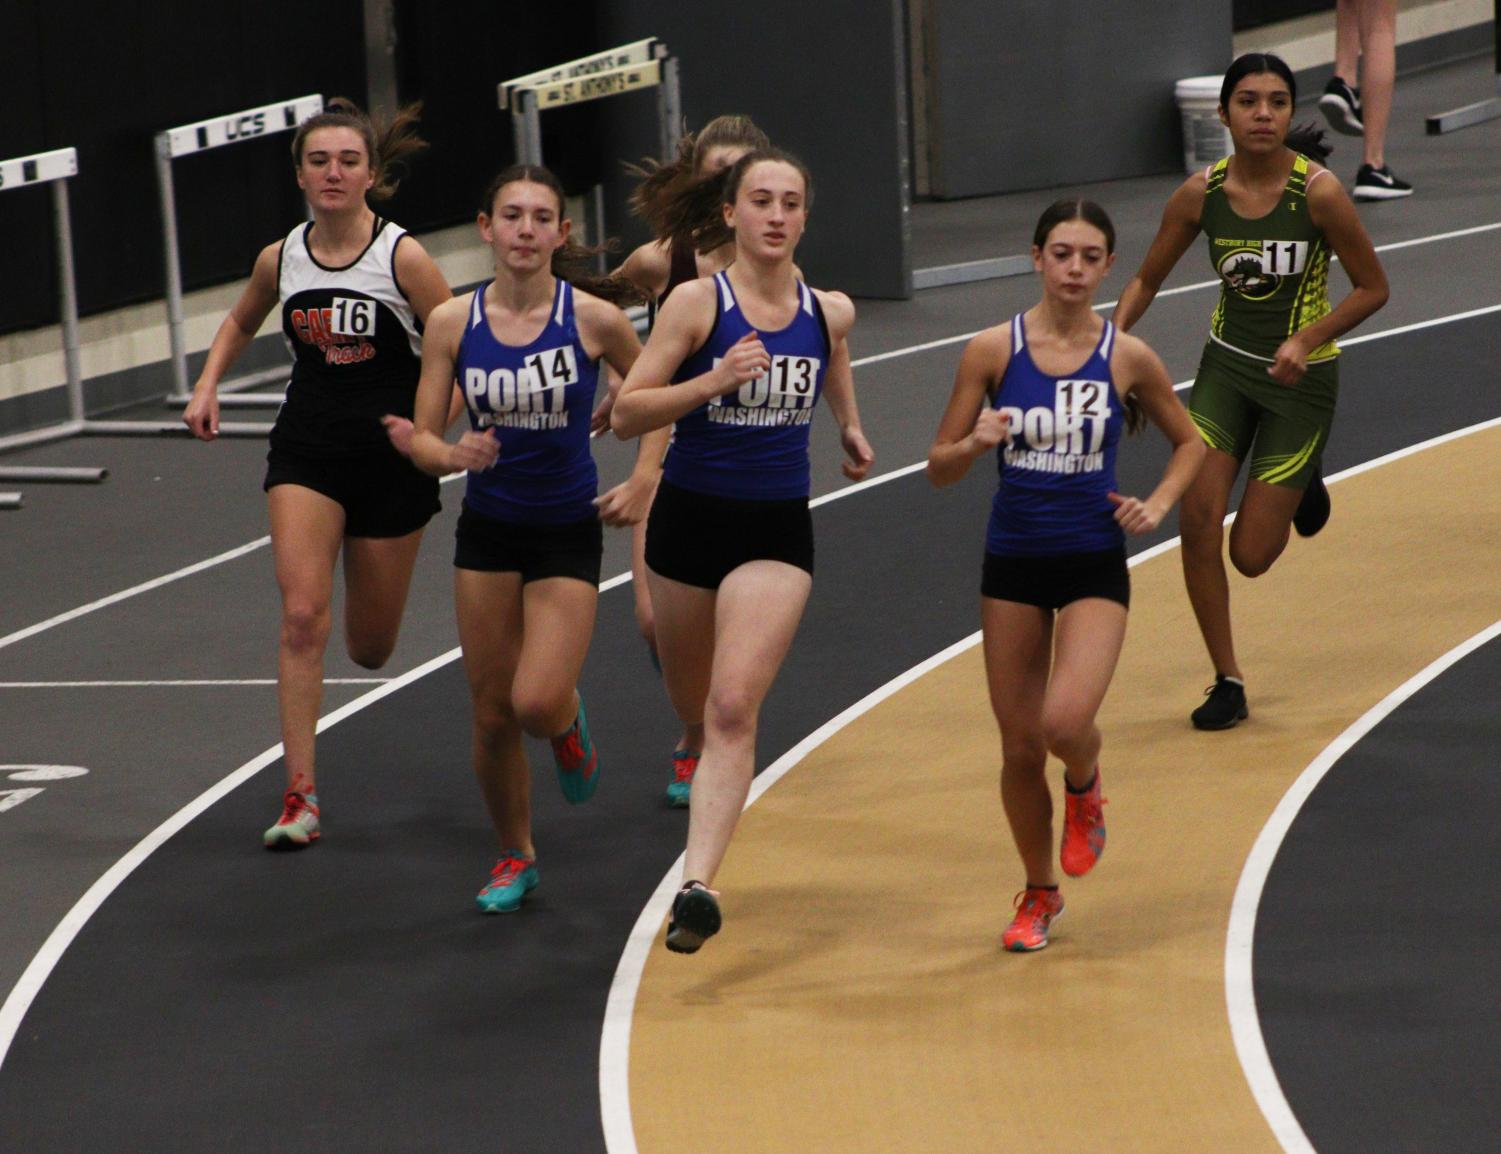 Junior Sally Hirshwerk, followed by senior Brittany Nahas (right) and freshman Emily Benson-Tyler (left), race the 1500M at St. Anthonys, on Dec. 5.